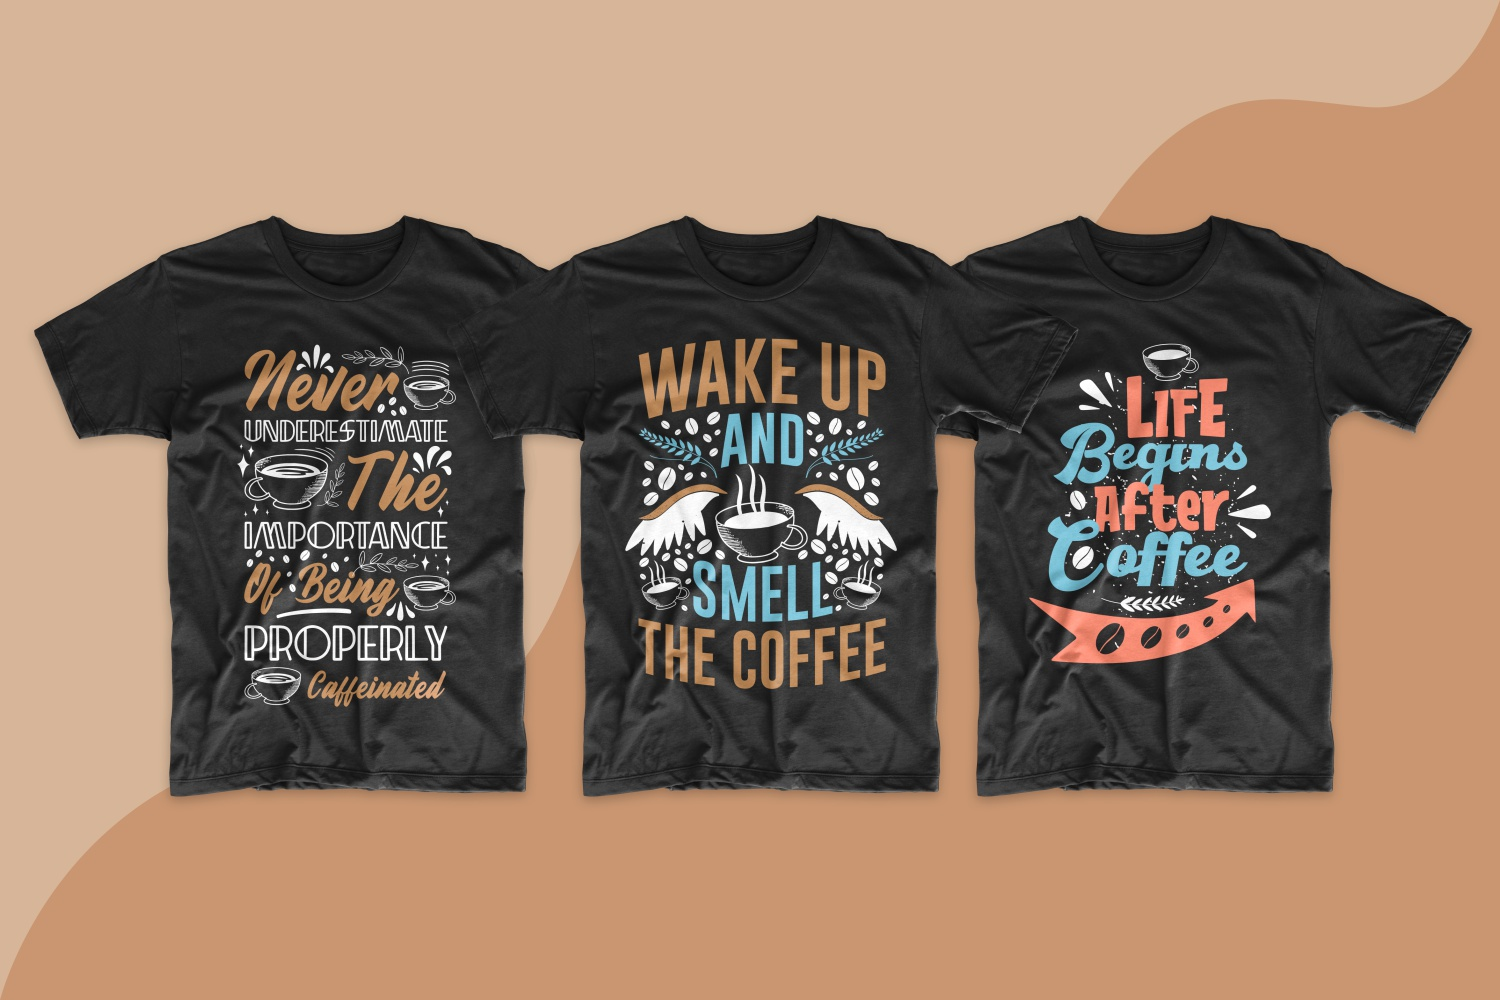 Black T-shirts about the importance of coffee.